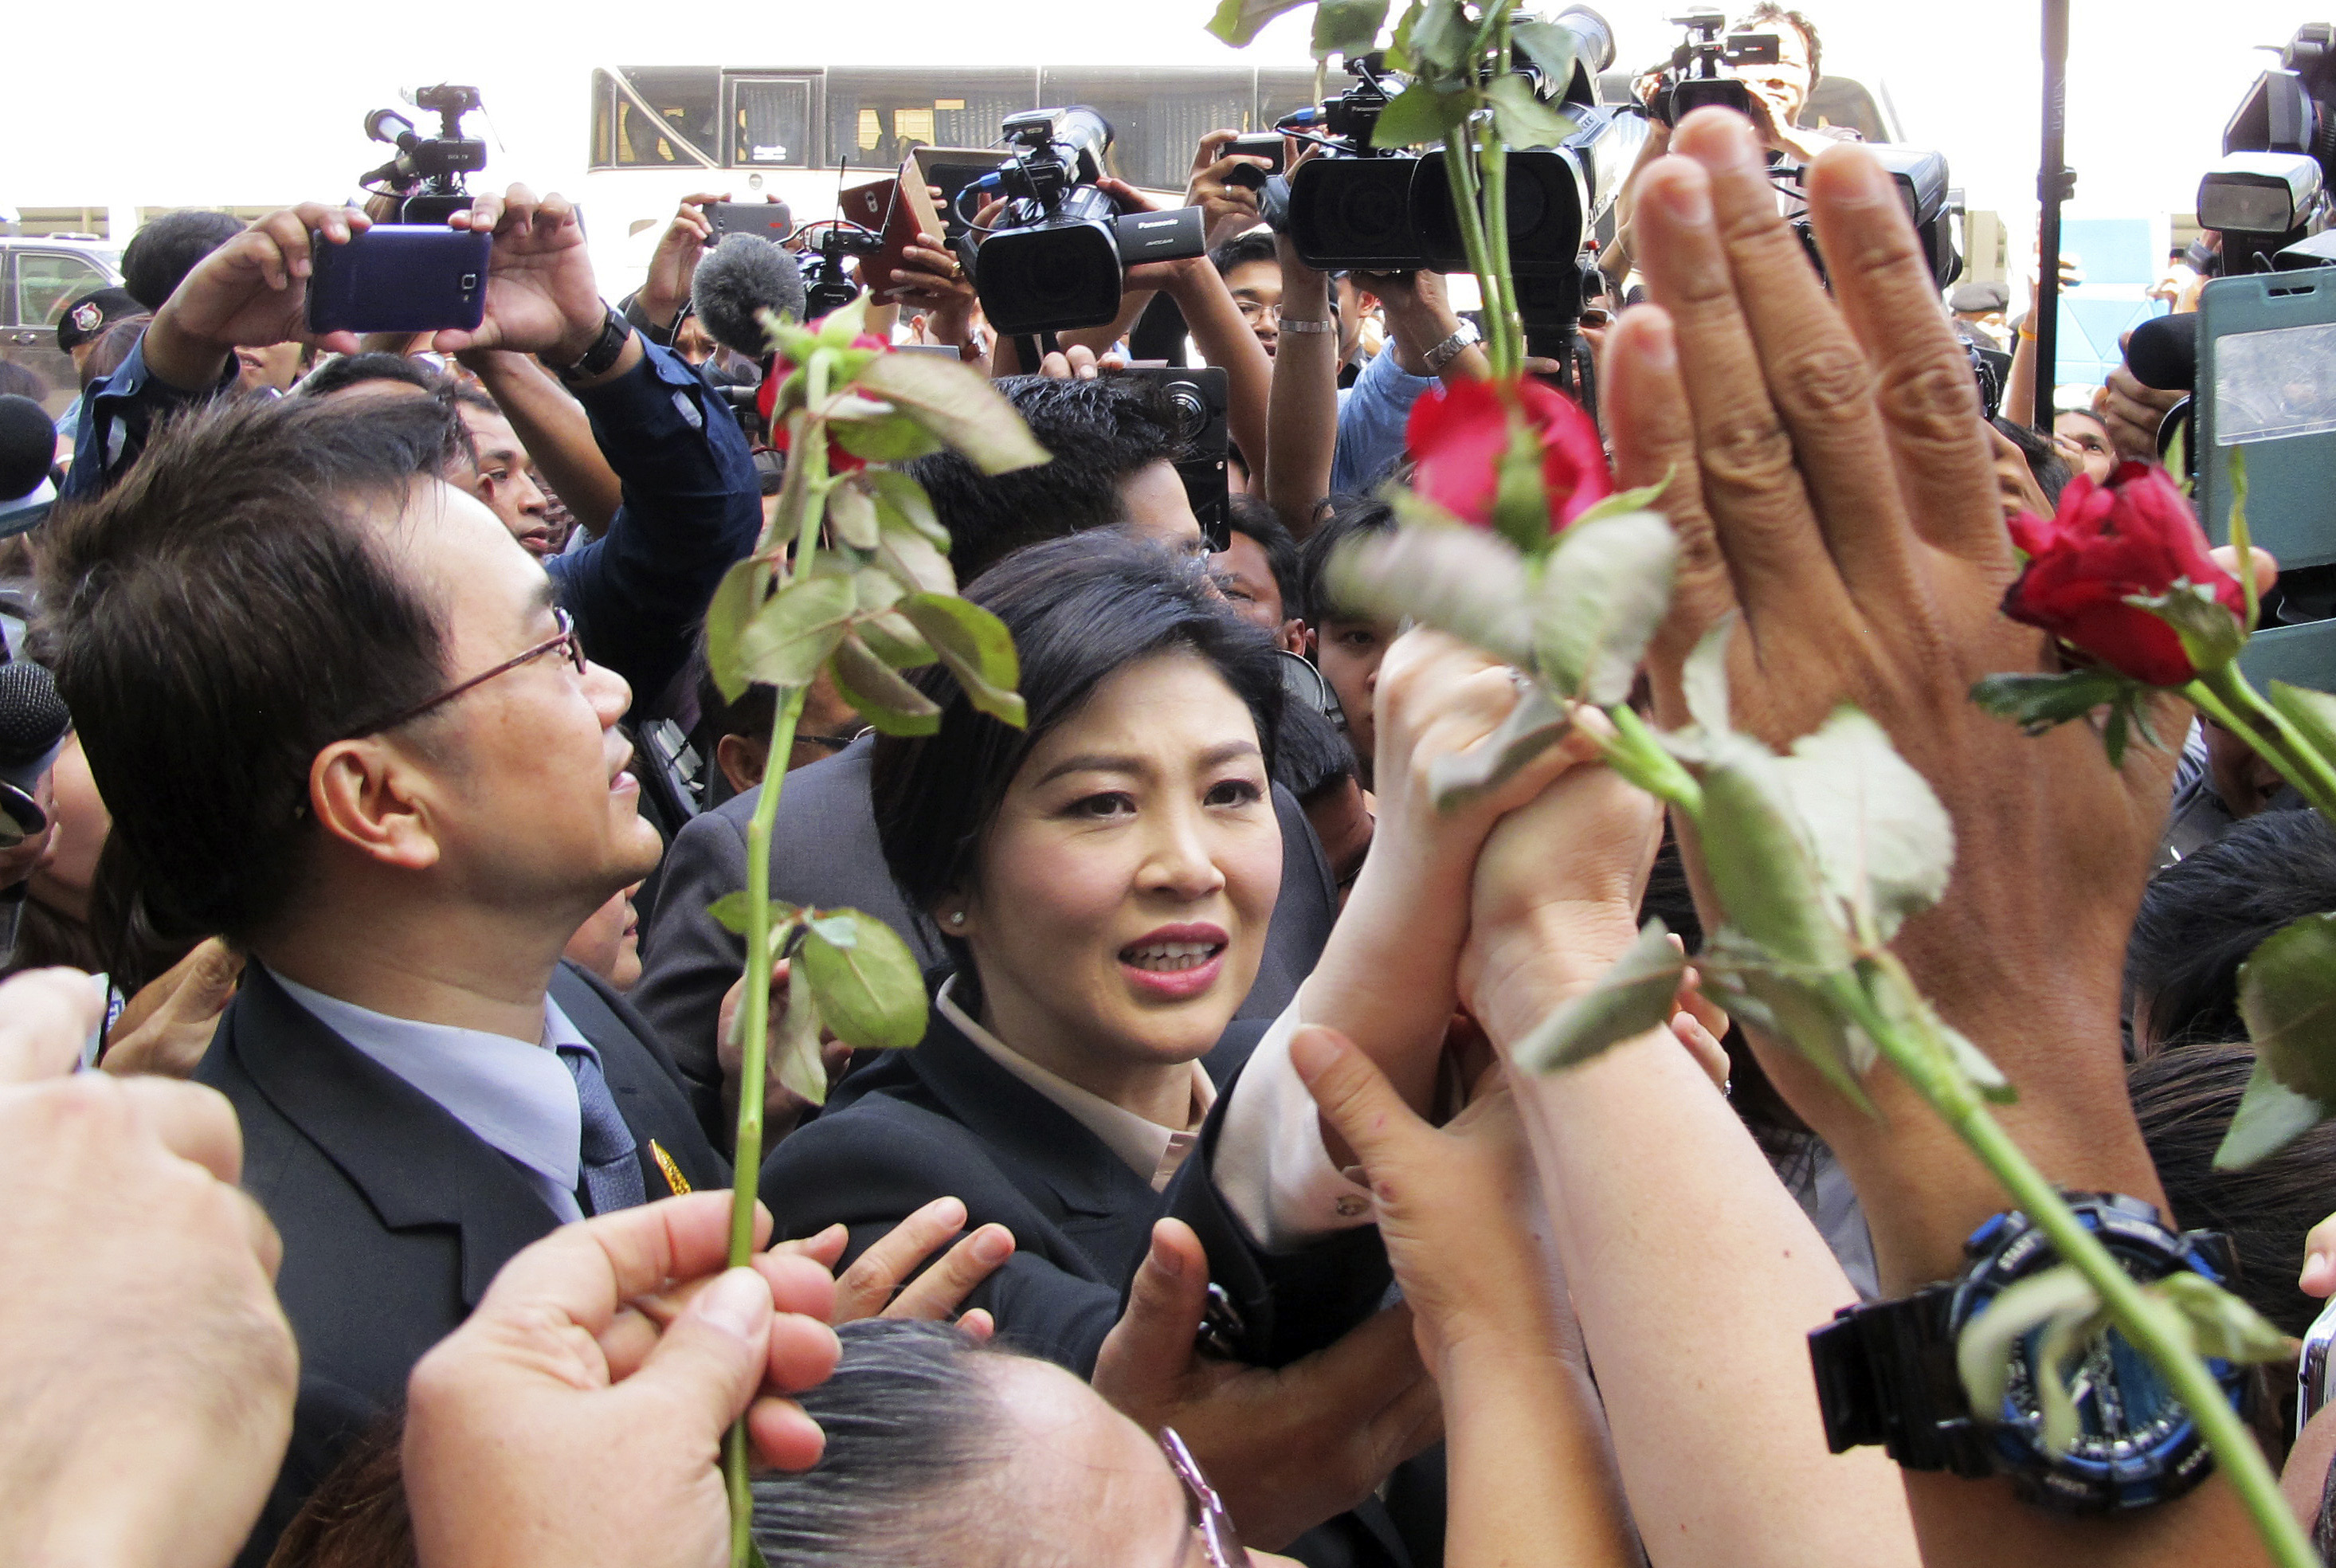 Thailand's former Prime Minister Yingluck Shinawatra, center, walks through supporters as she leaves the Supreme Court in Bangkok, Thailand, Tuesday, May 19, 2015.